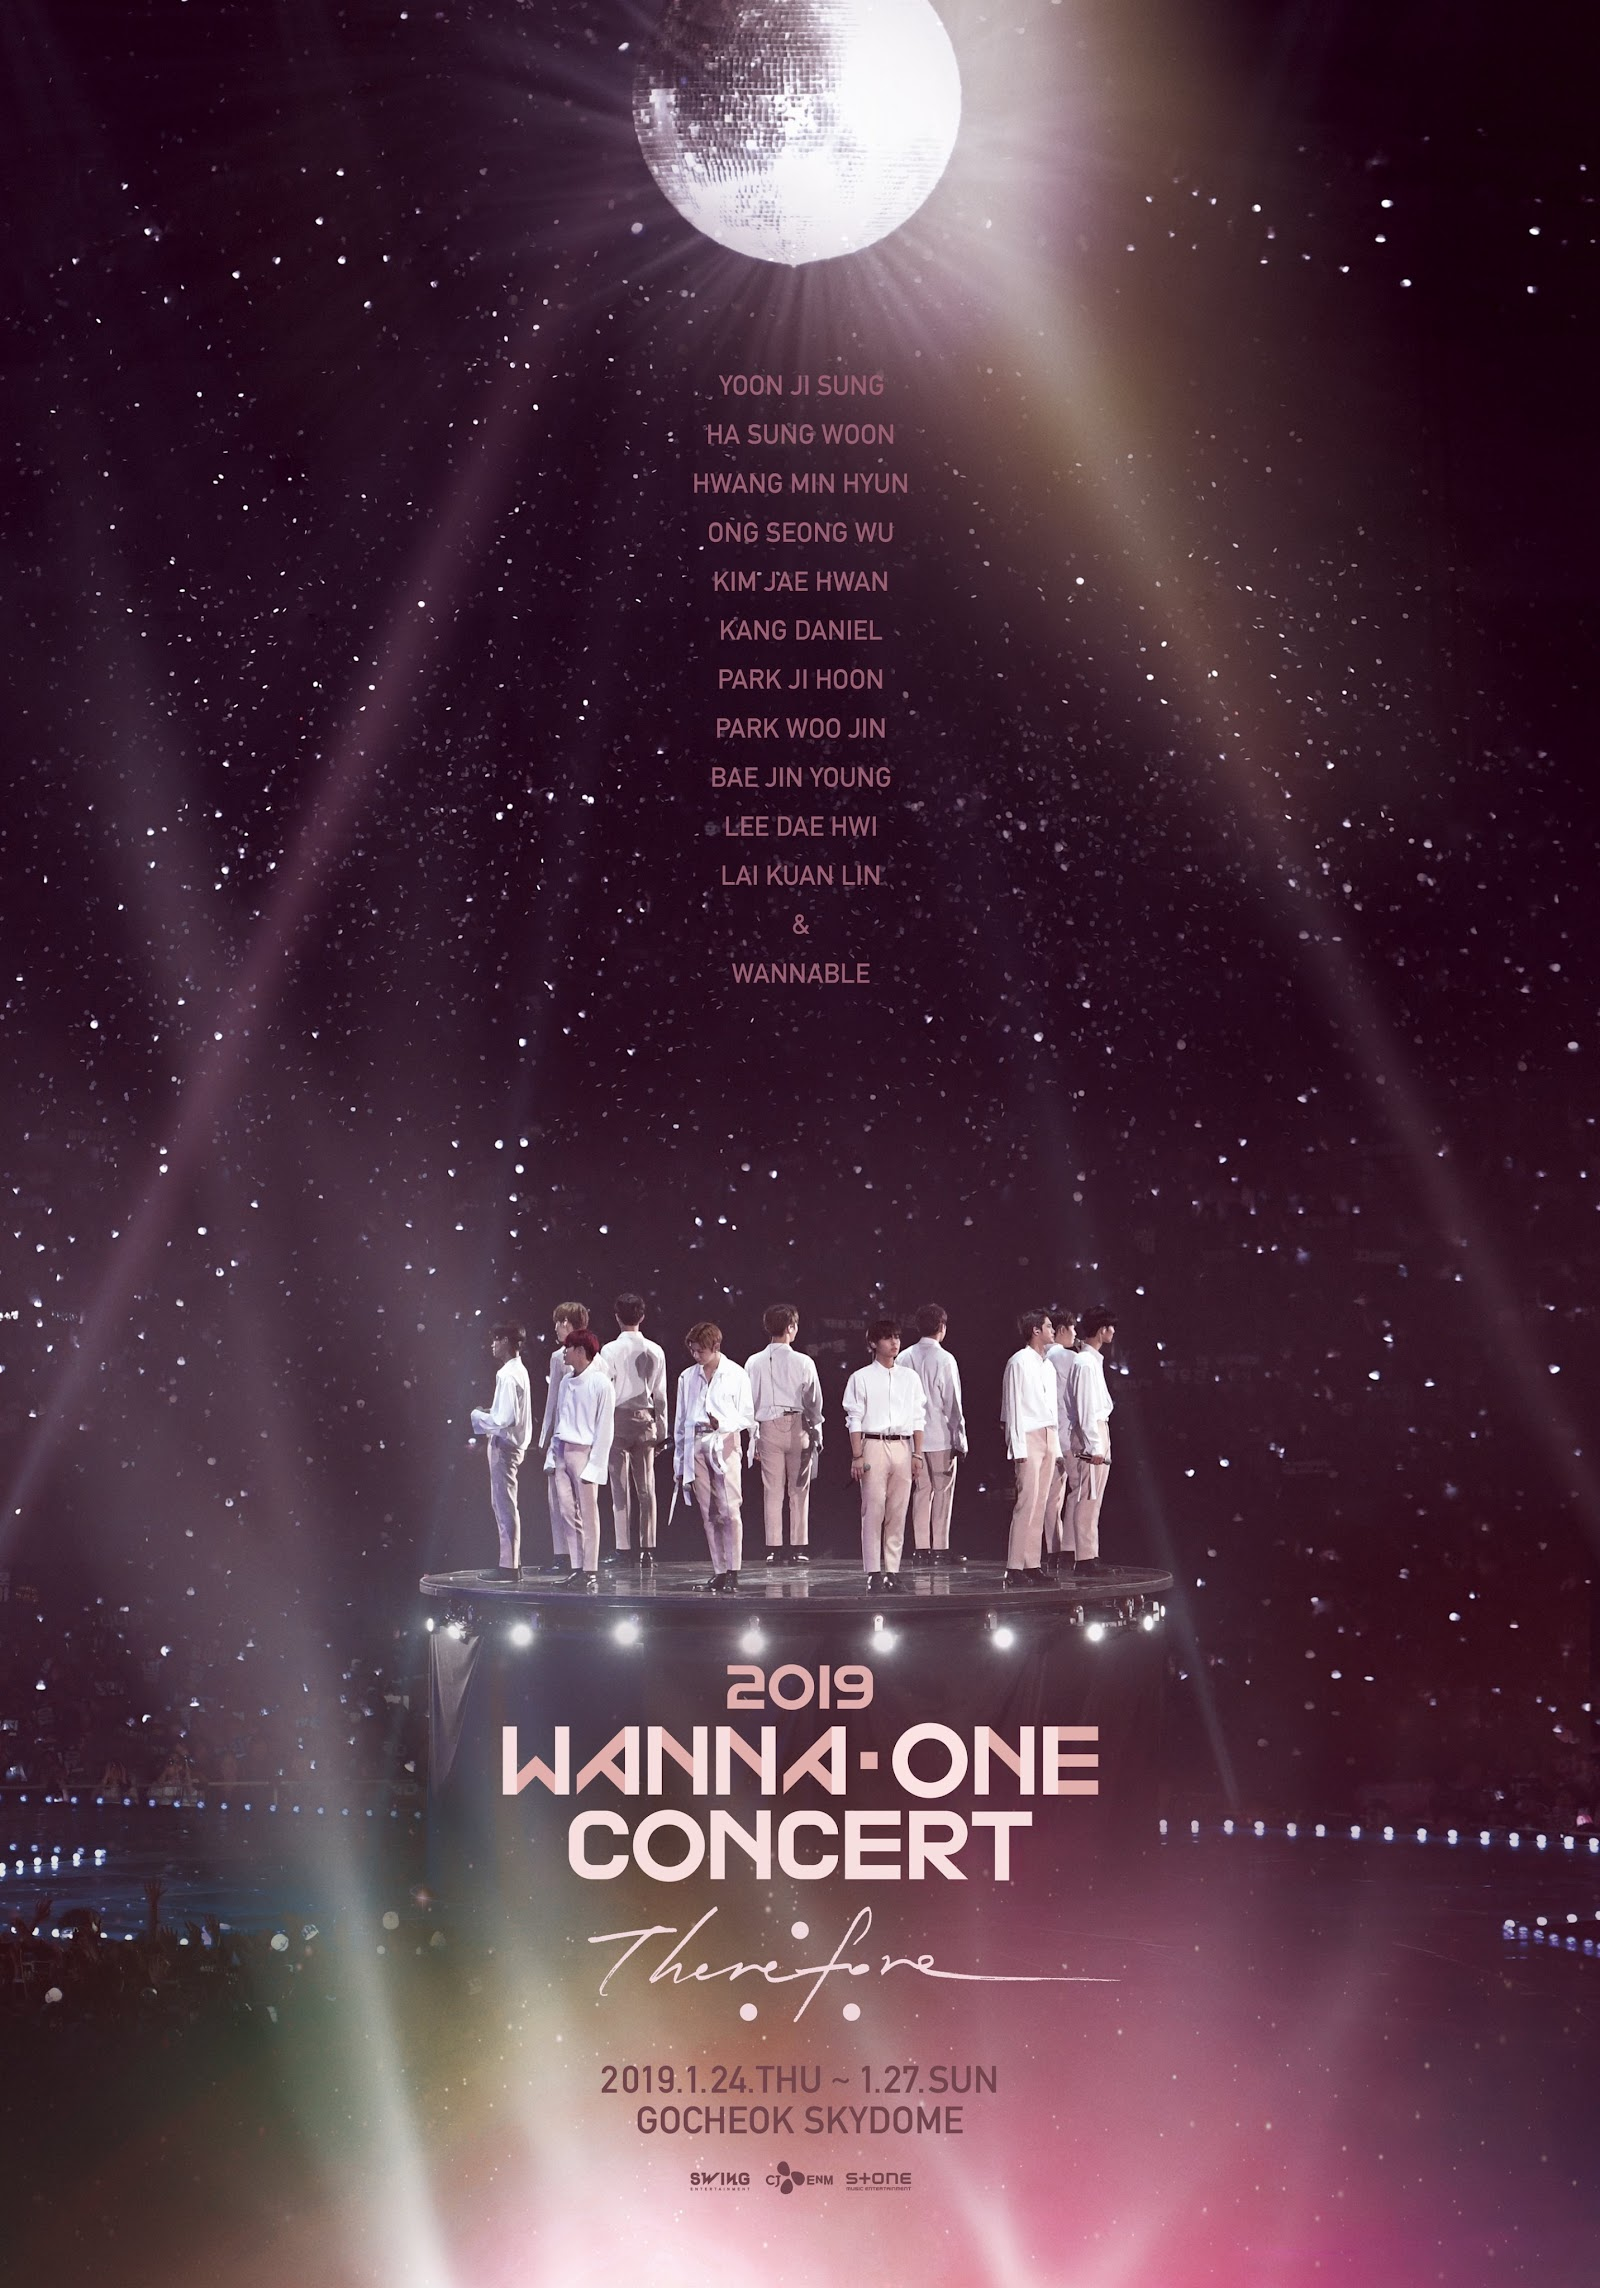 Drinking Girl Wallpaper Download Tickets To Wanna One S Last Concert Reach Up To 12 500